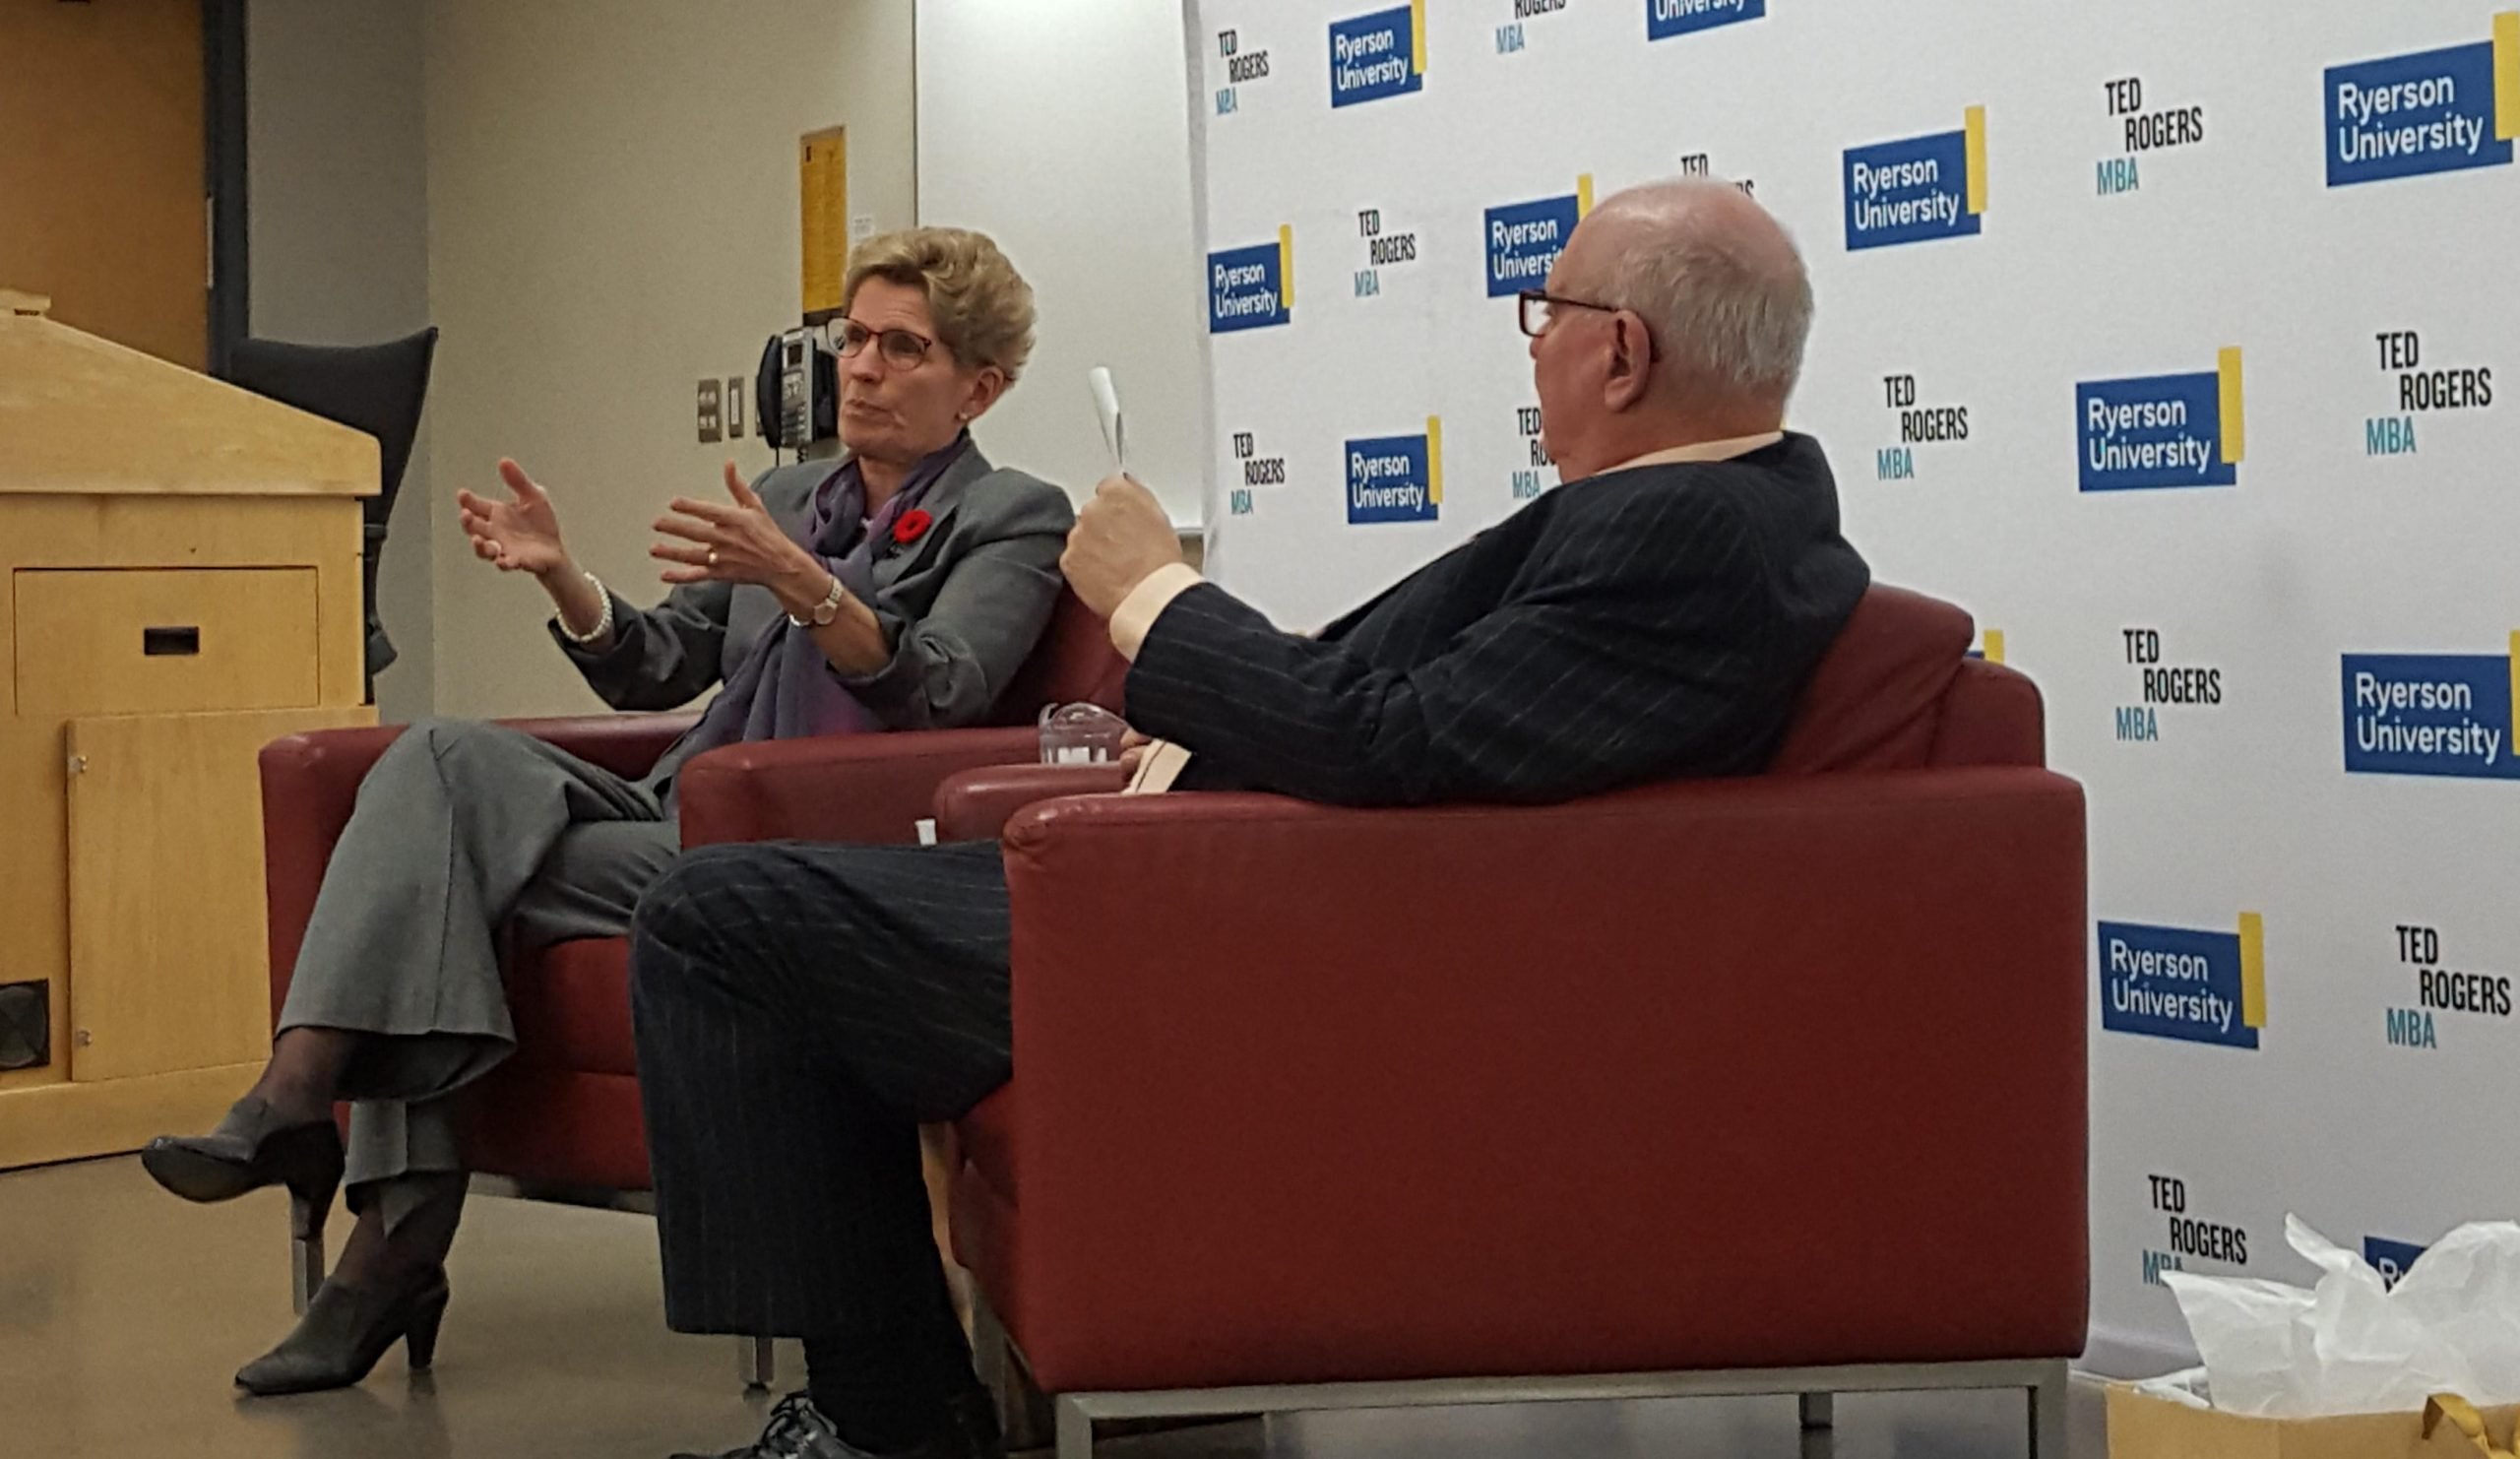 Kathleen Wynne sits in a chair next to Ralph Lean